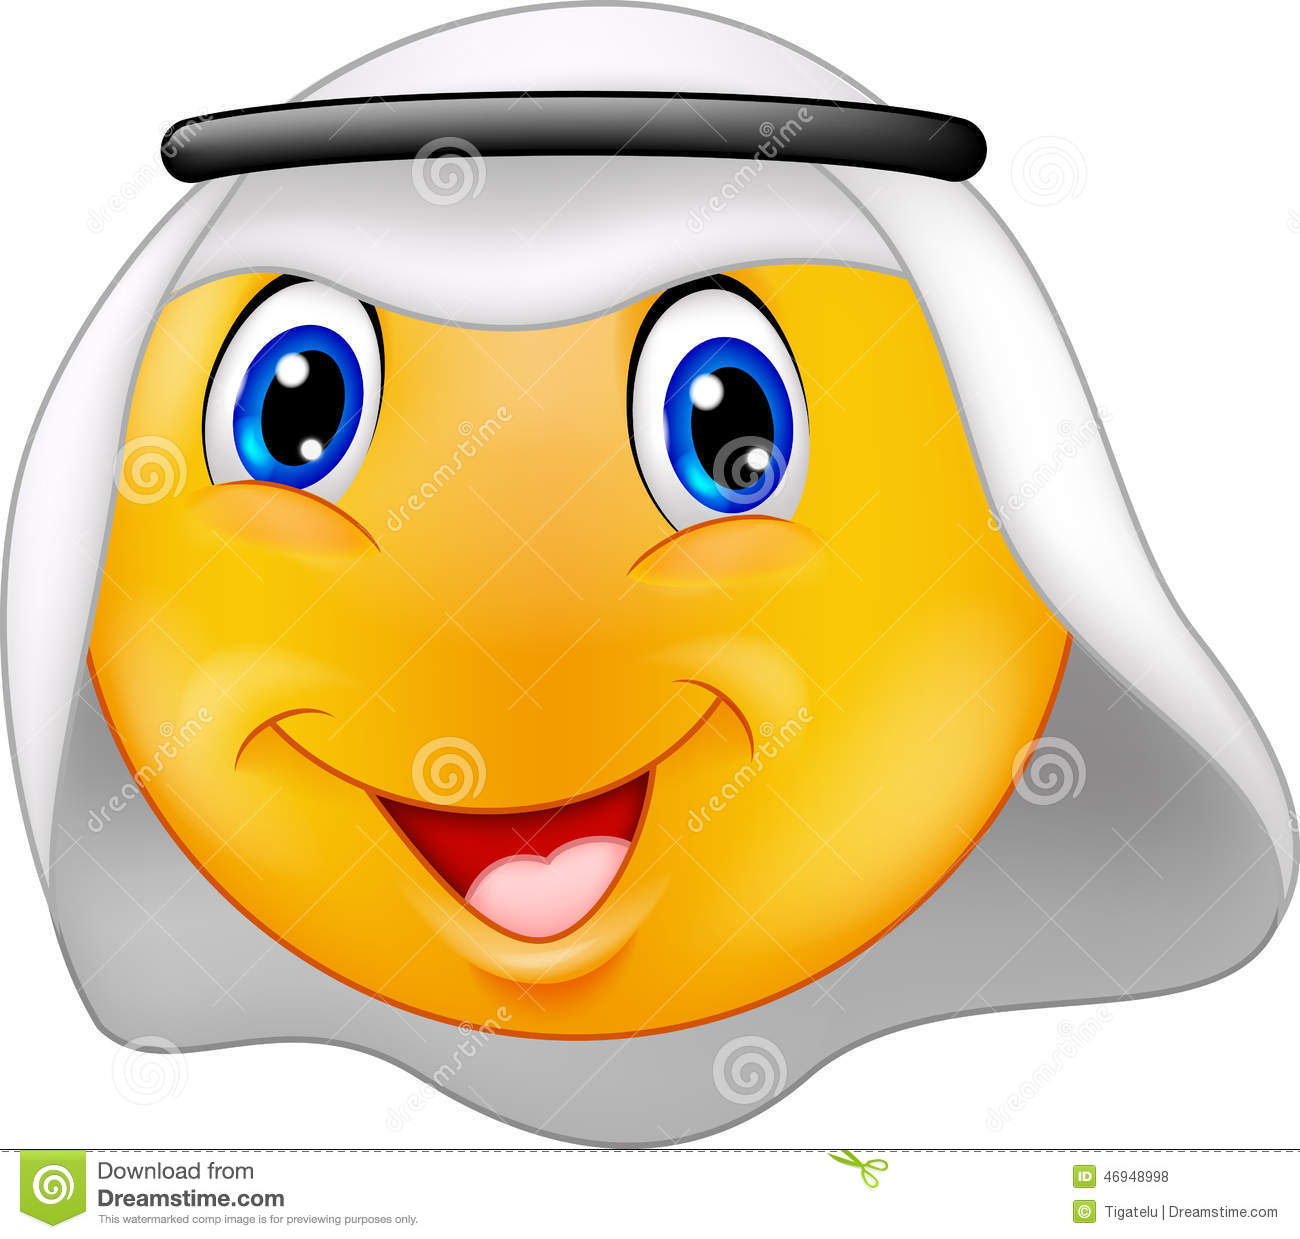 Emoticon Smiley With Arabic Dress Stock Vector - Image ...Pet Penguin